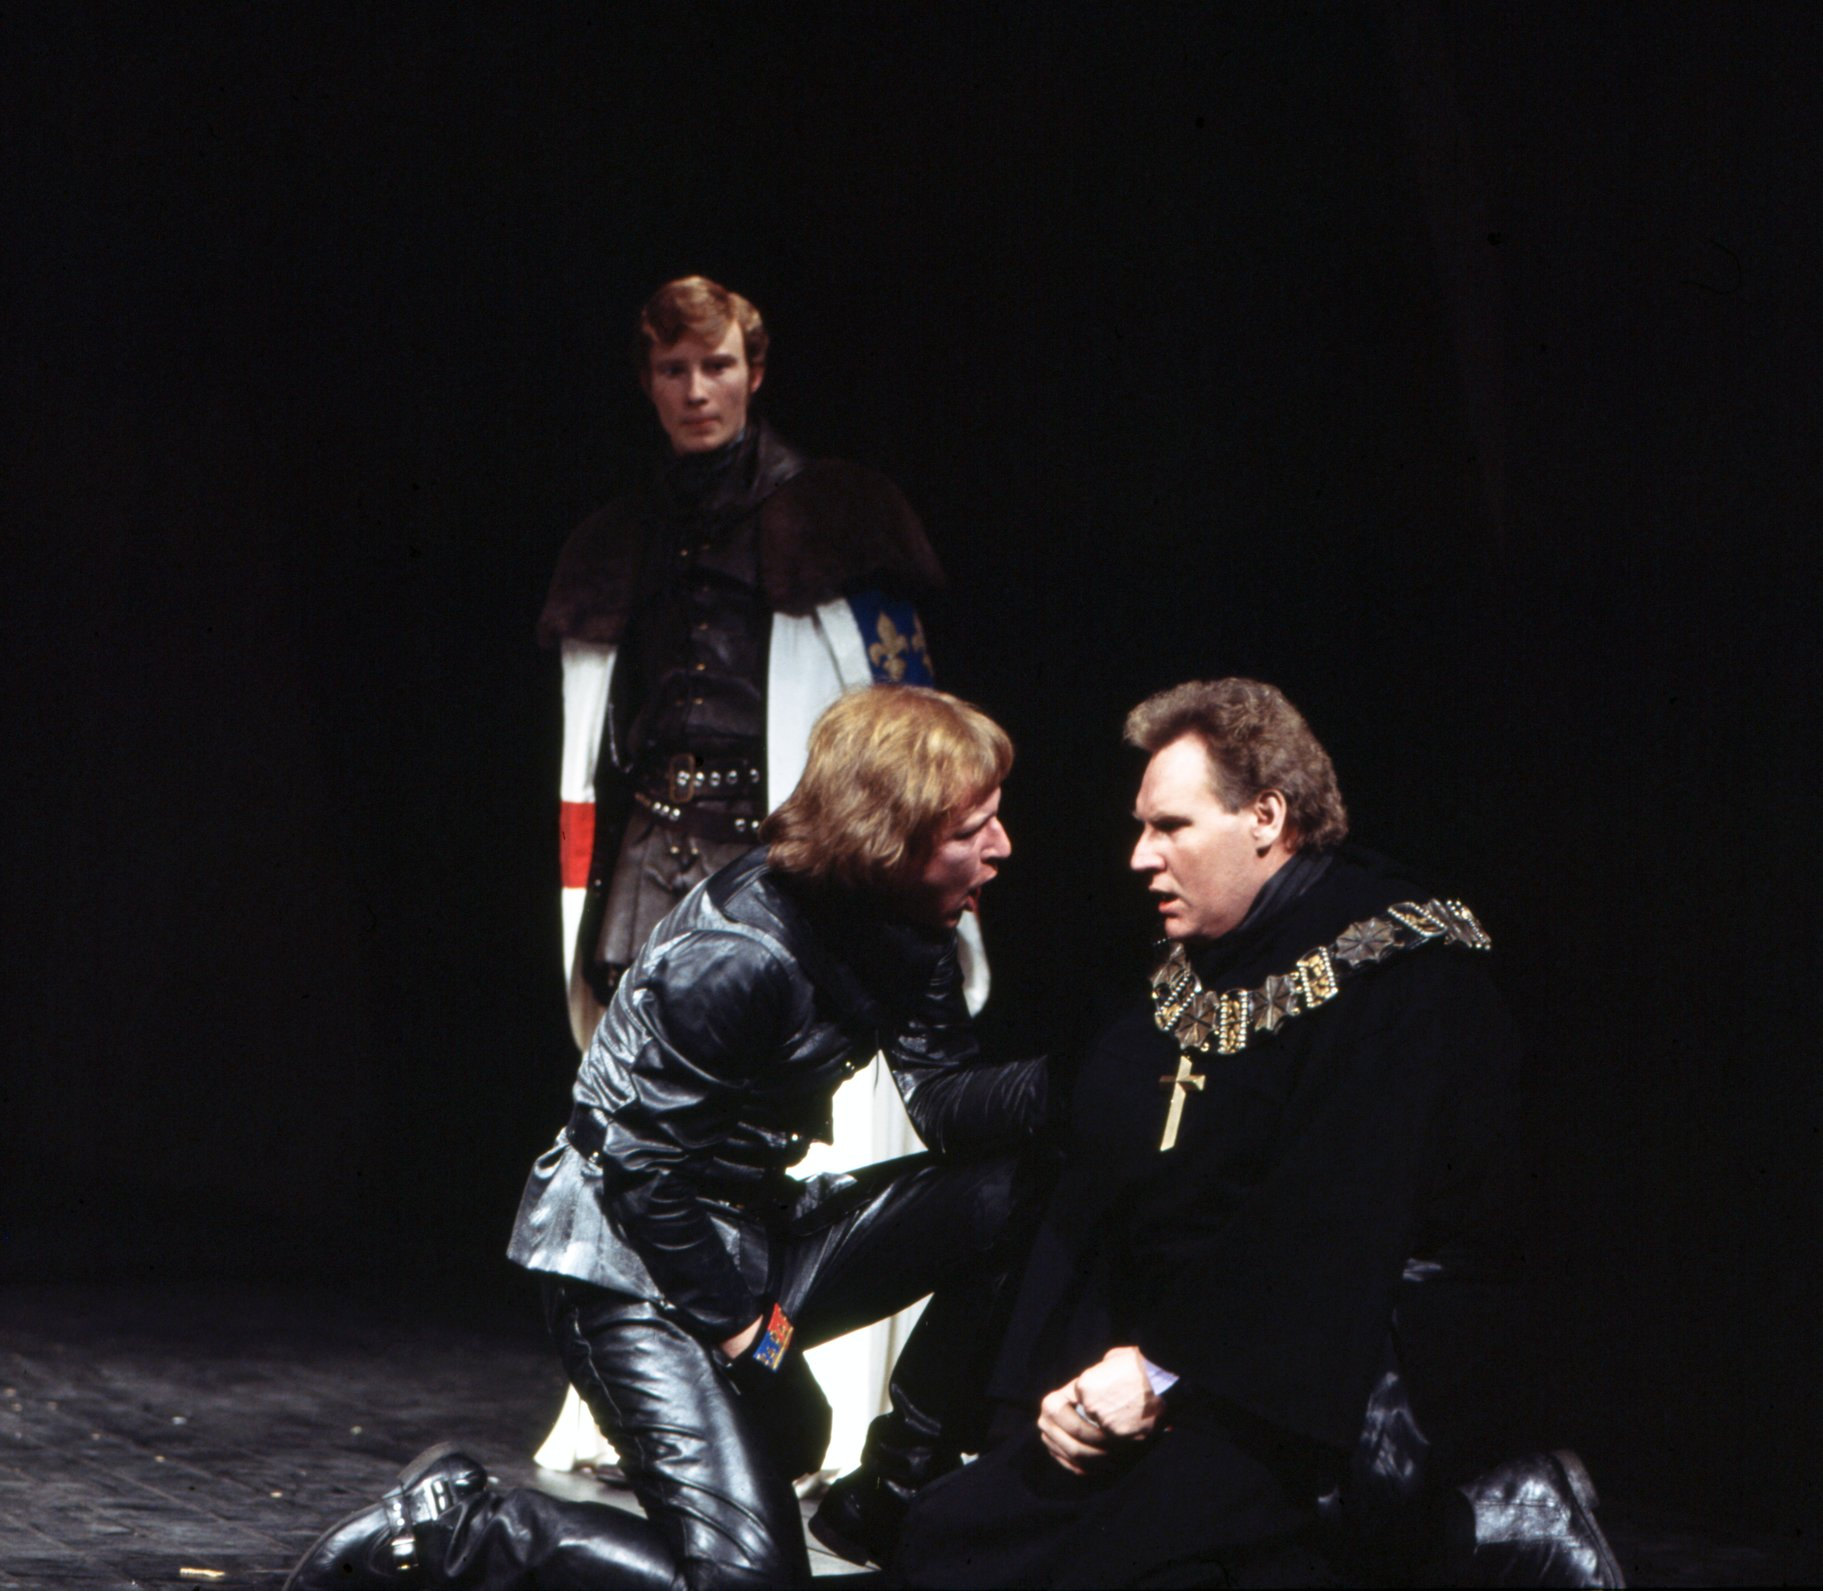 Henry kneels down to shout at a collapsed Scroop, who sits with his hands in his lap on the floor in the 1975 production of Henry V